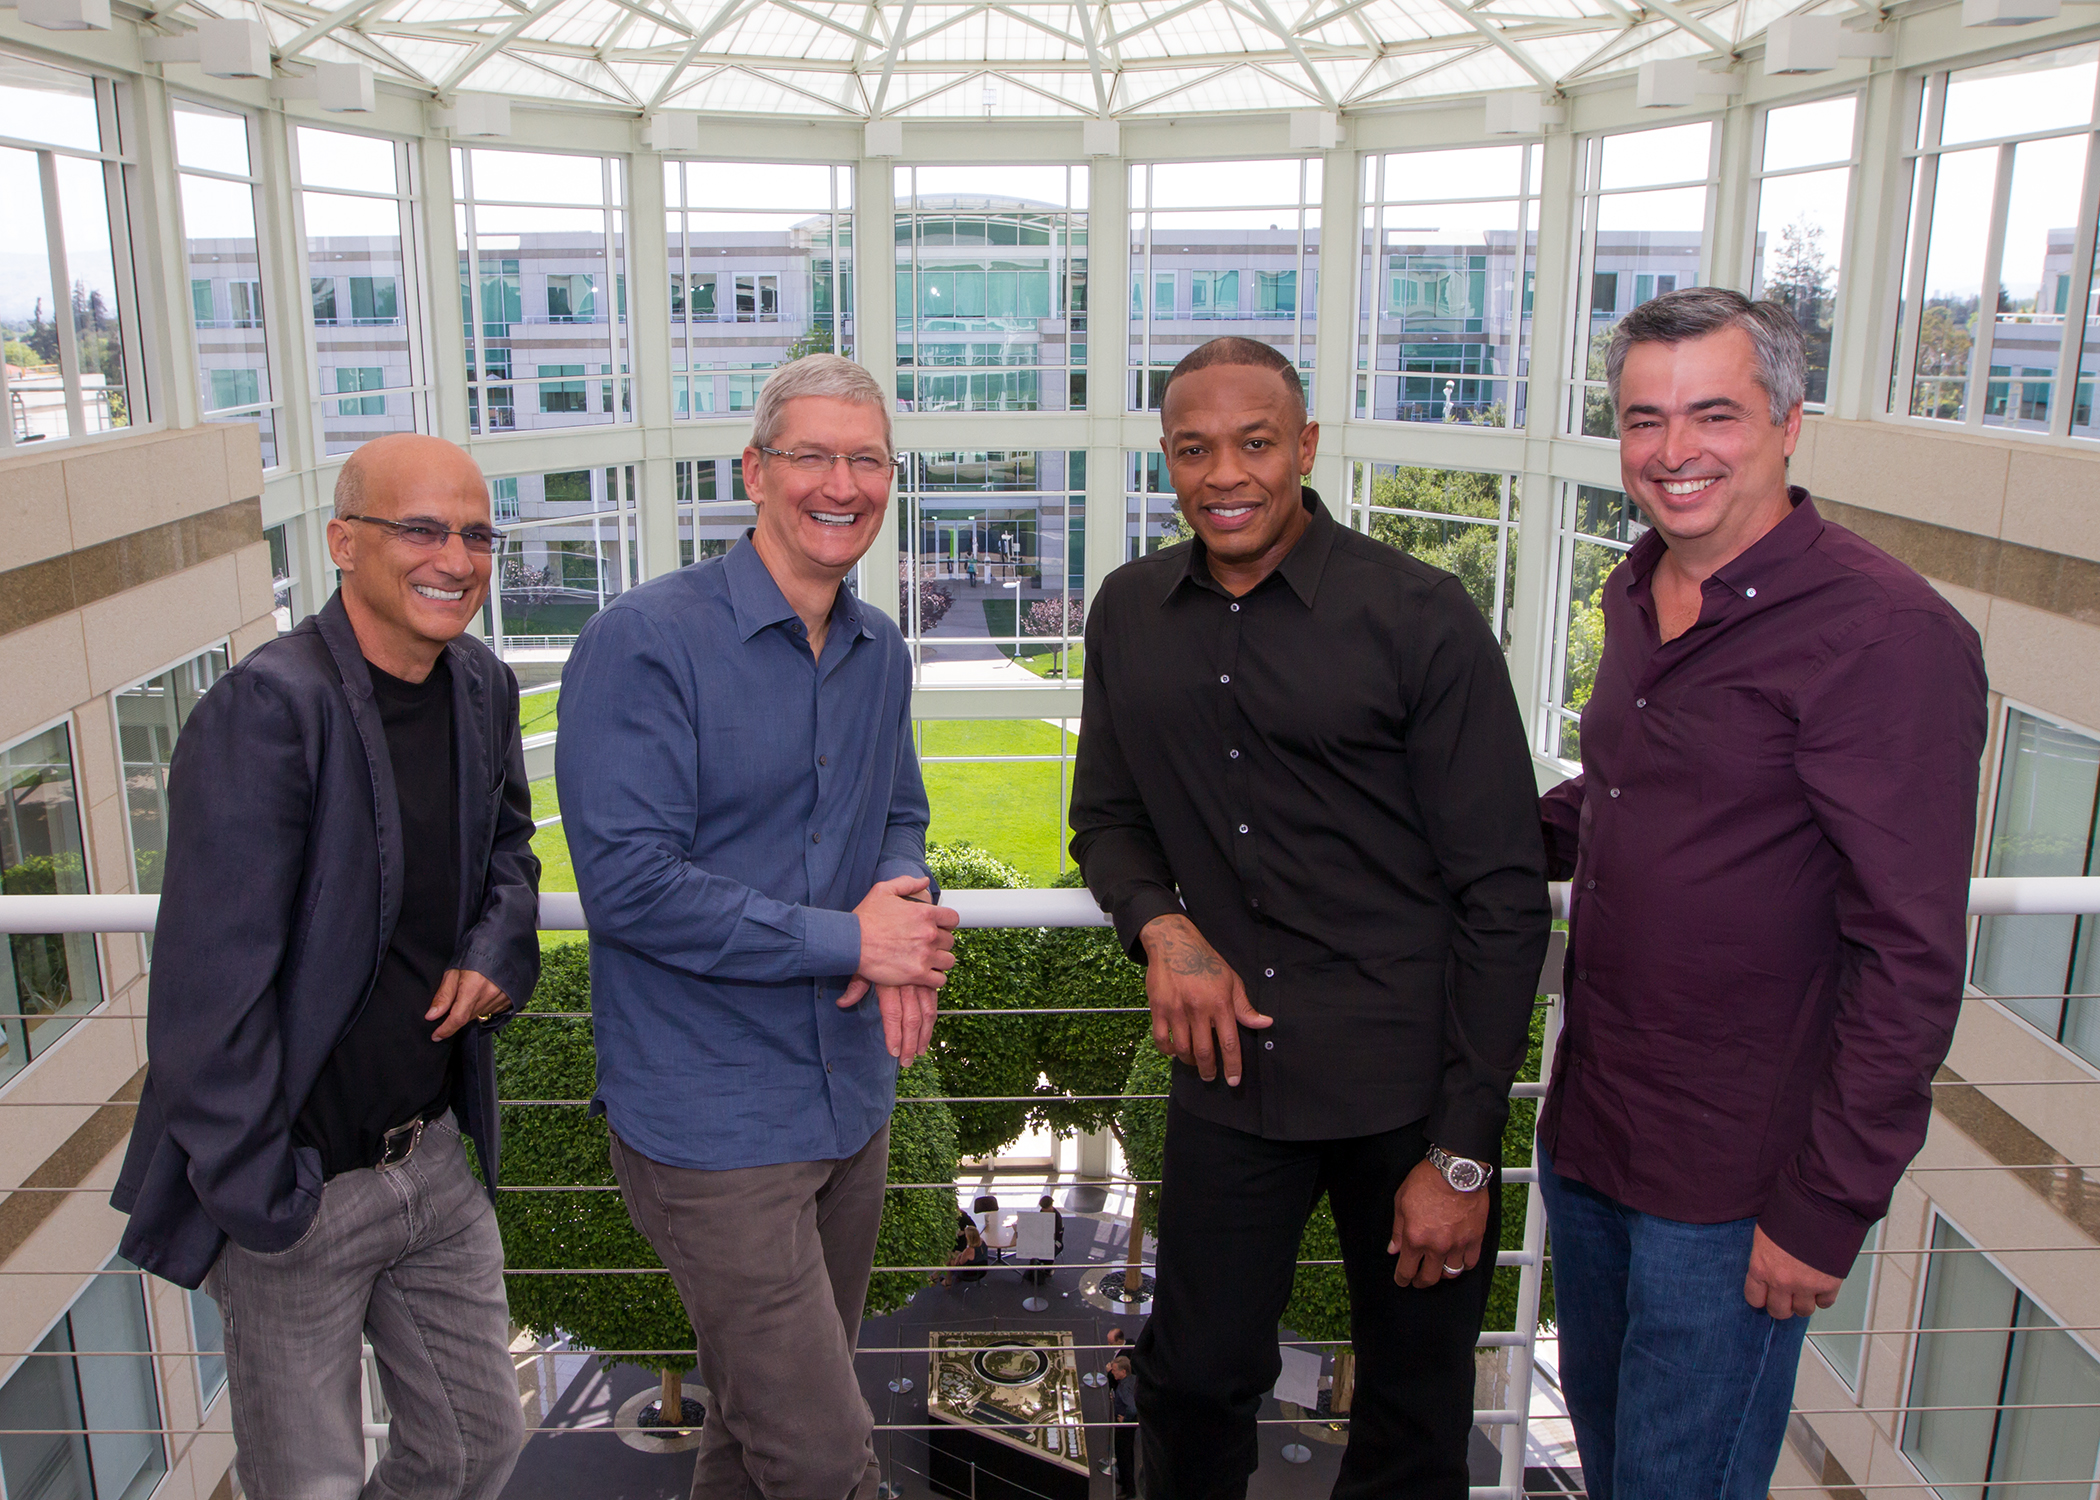 At Apple headquarters in Cupertino, Calif. on May 28, 2014.